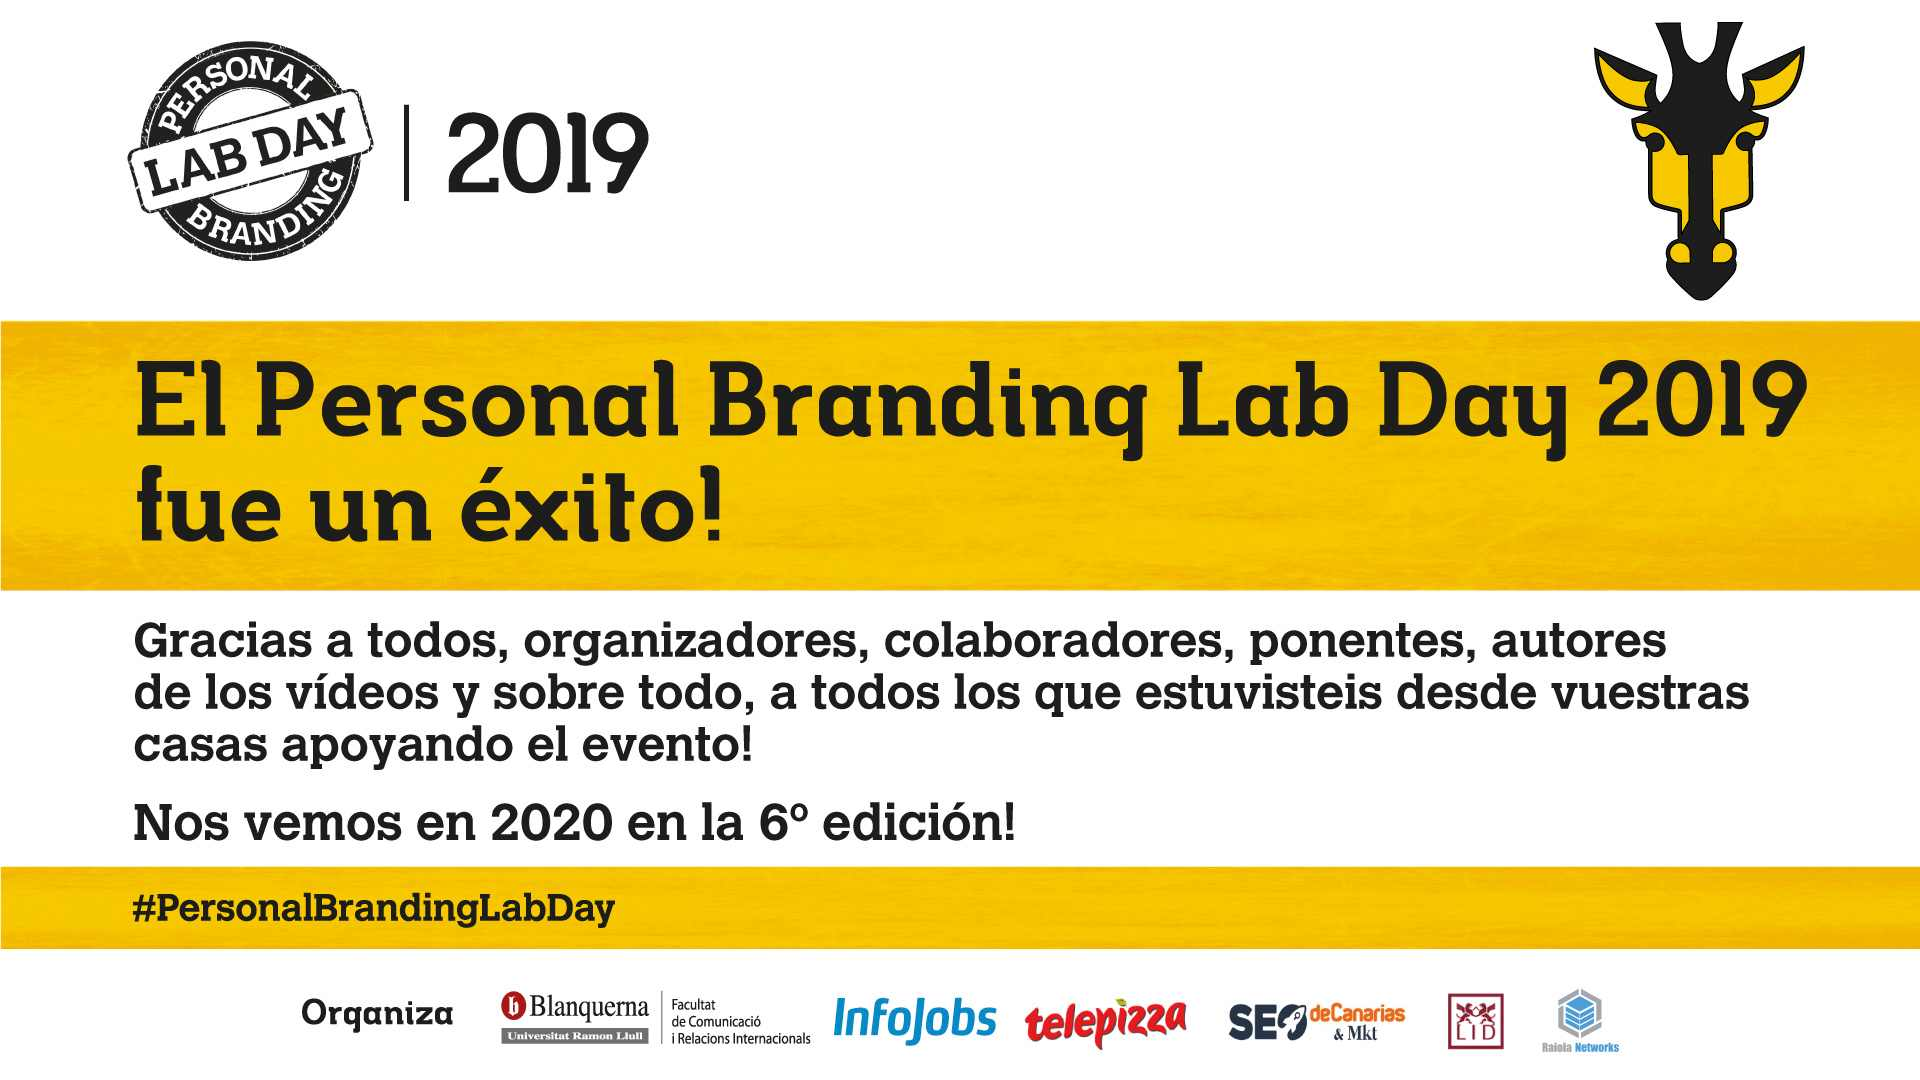 Éxito Personal Branding Lab Day 2019